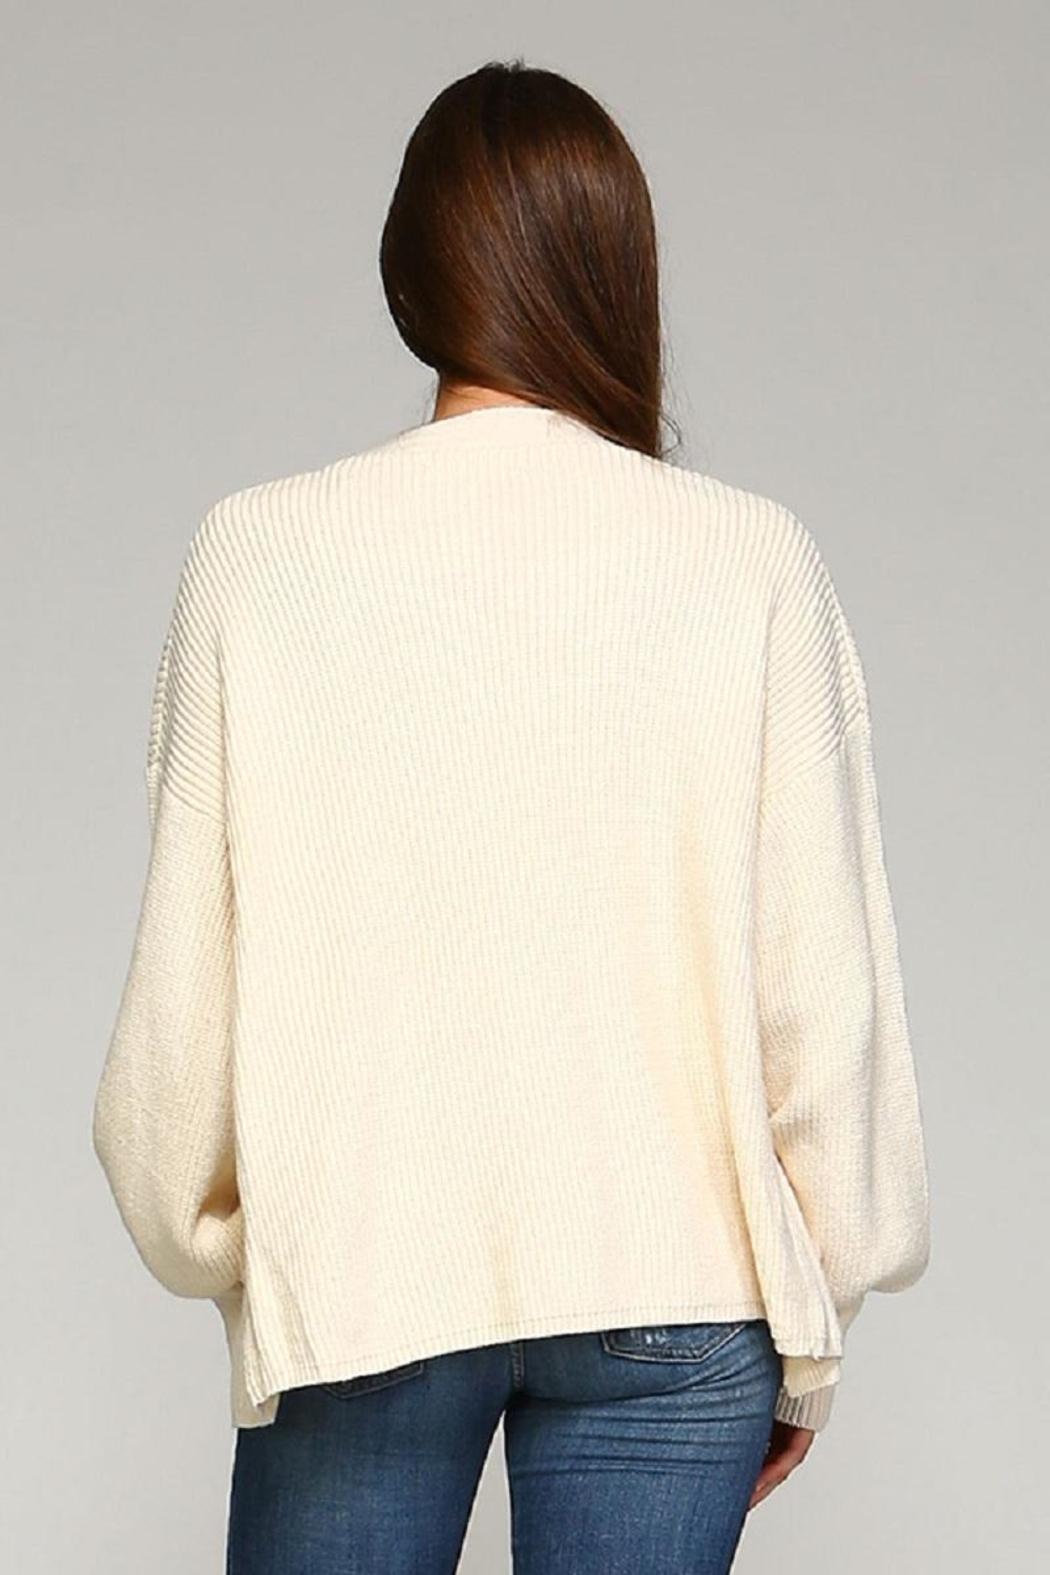 Selfie Couture Ivory Cardigan - Back Cropped Image